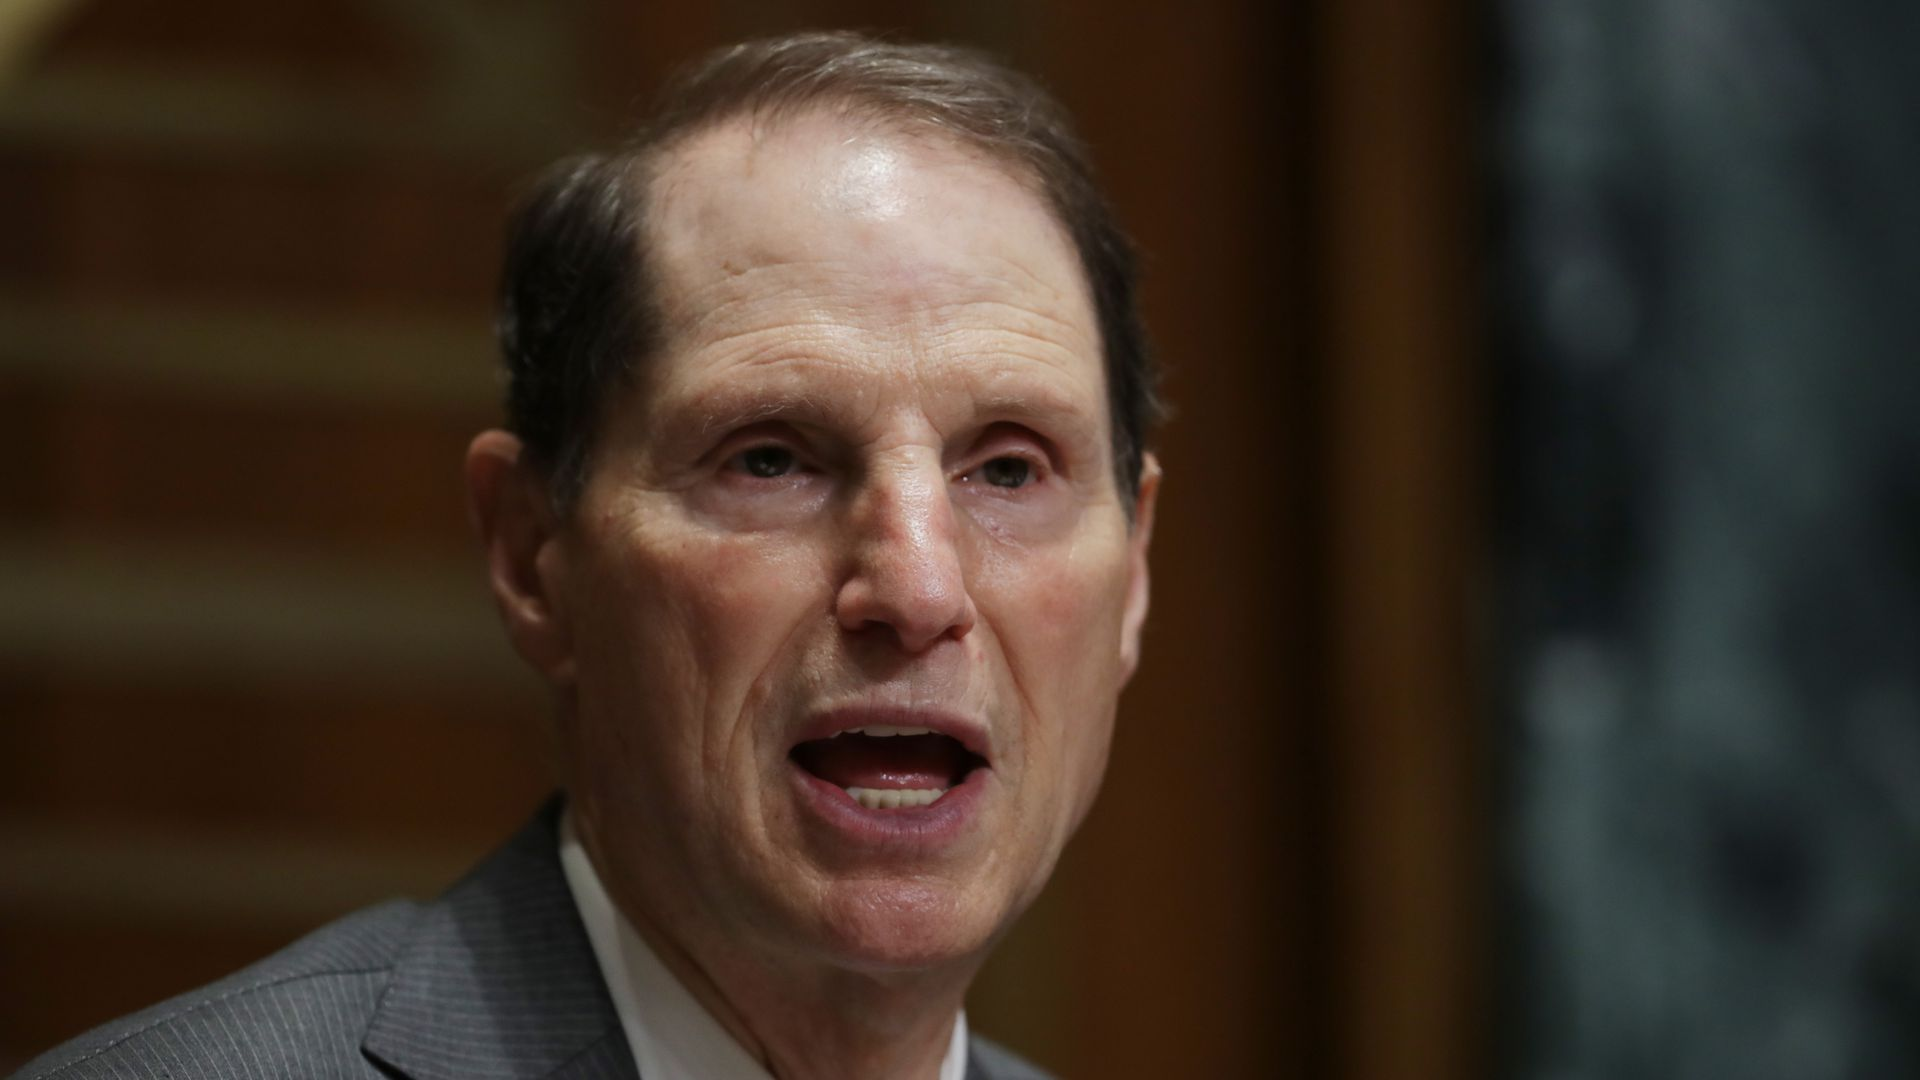 Sen. Ron Wyden speaks, wearing a suit